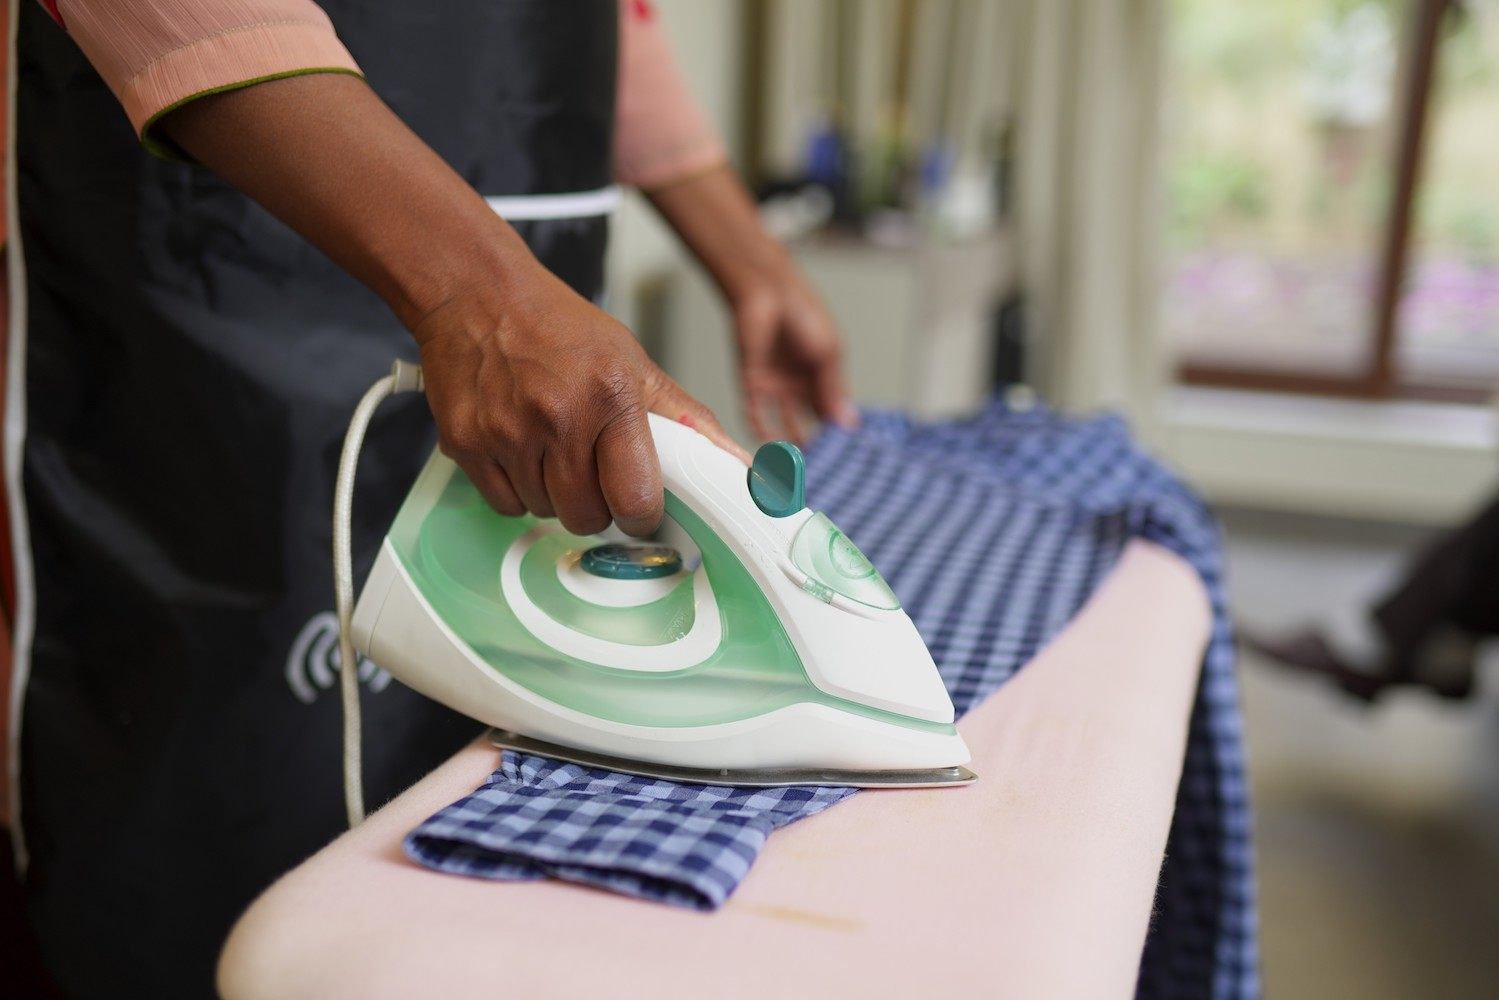 Helper ironing a shirt - available in Islamabad, rawalpindi and lahore through Mauqa Online app